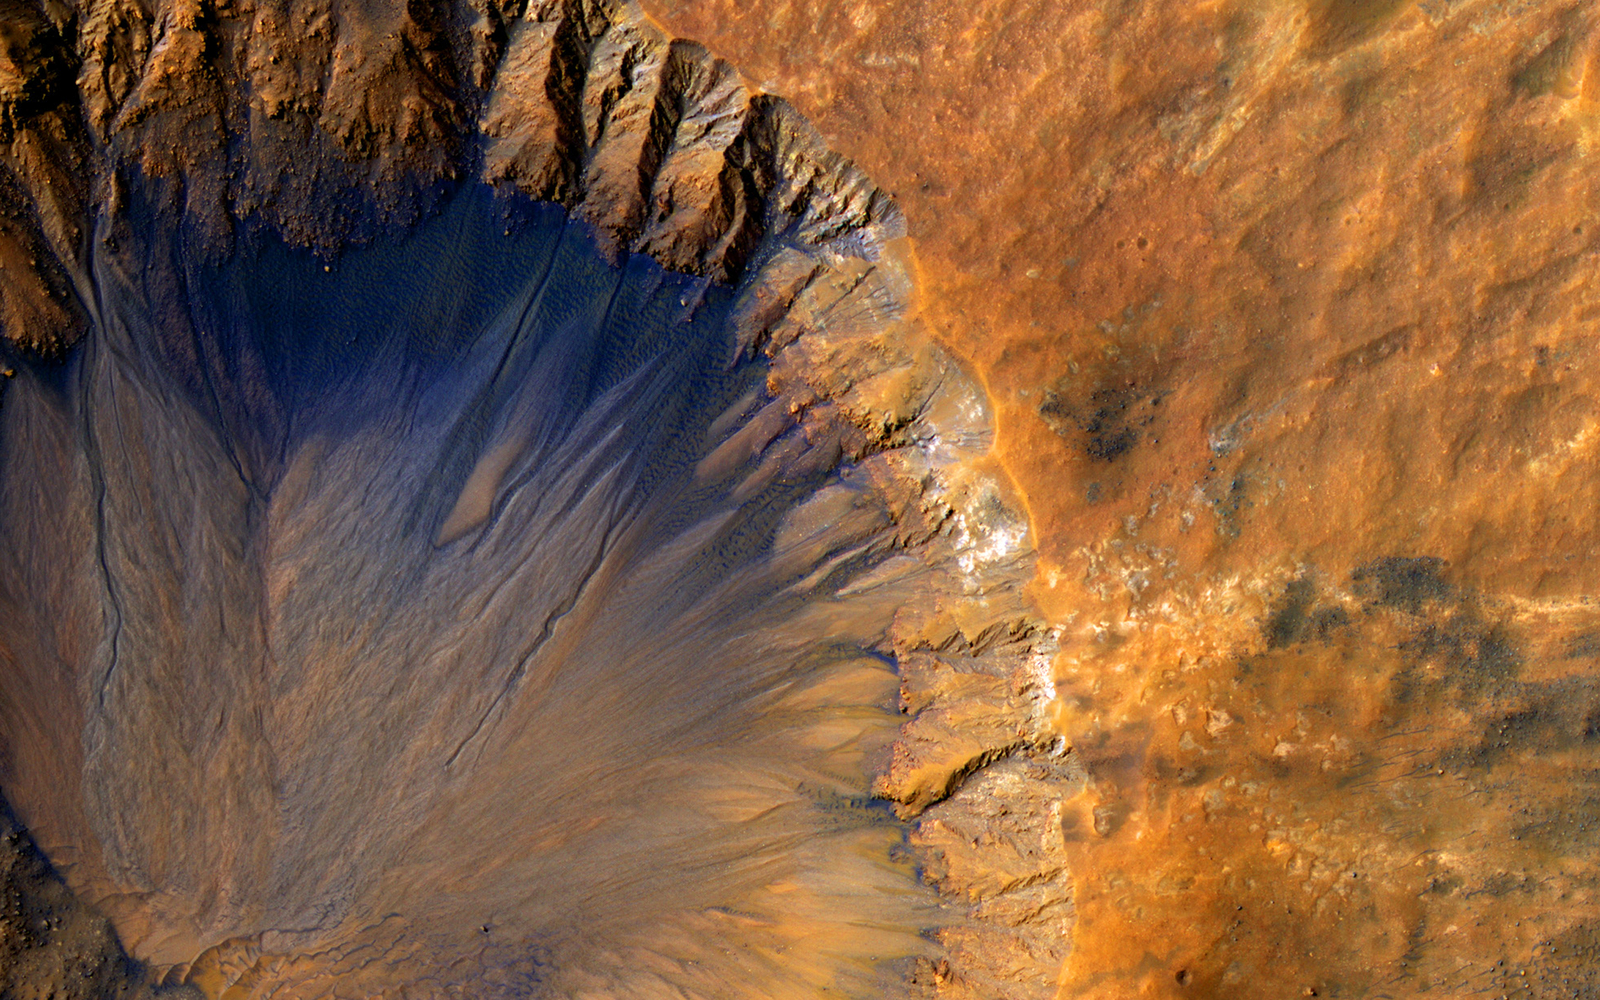 This impact crater appears relatively recent as it has a sharp rim and well-preserved ejecta, the material thrown out of the crater when a meteorite hit Mars.